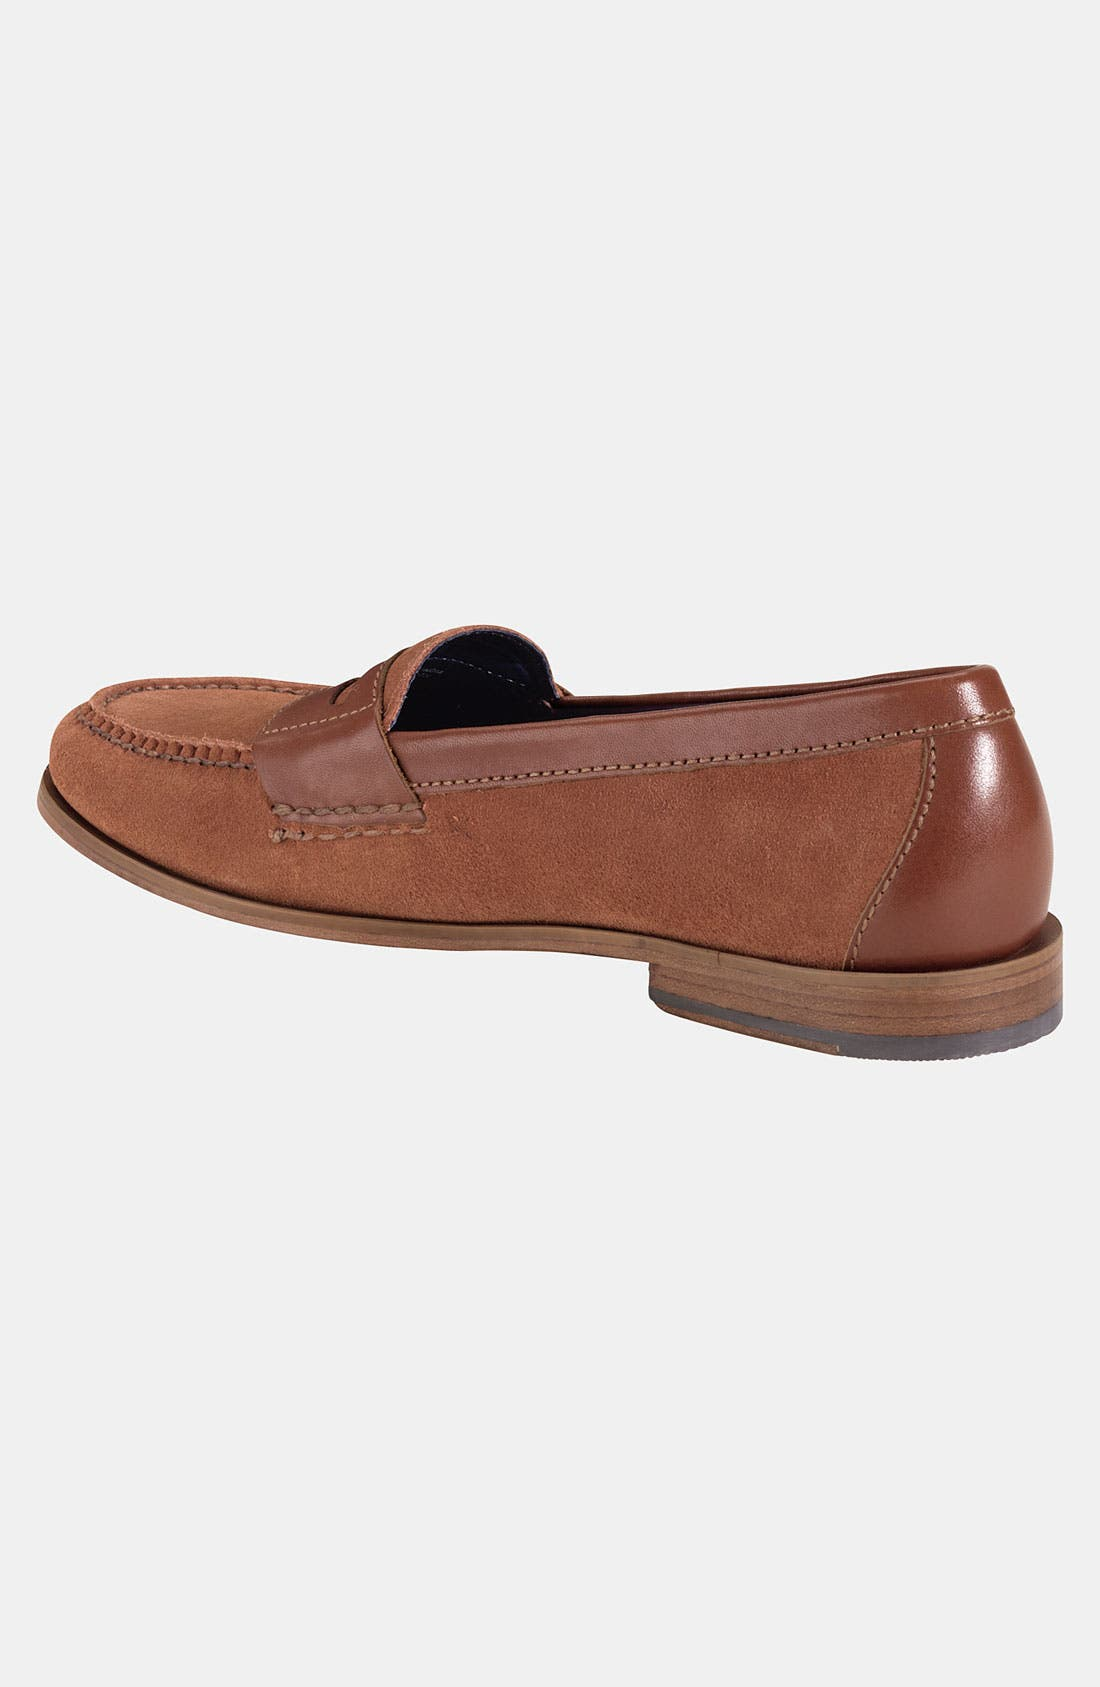 Alternate Image 2  - Cole Haan 'Pinch' Penny Loafer